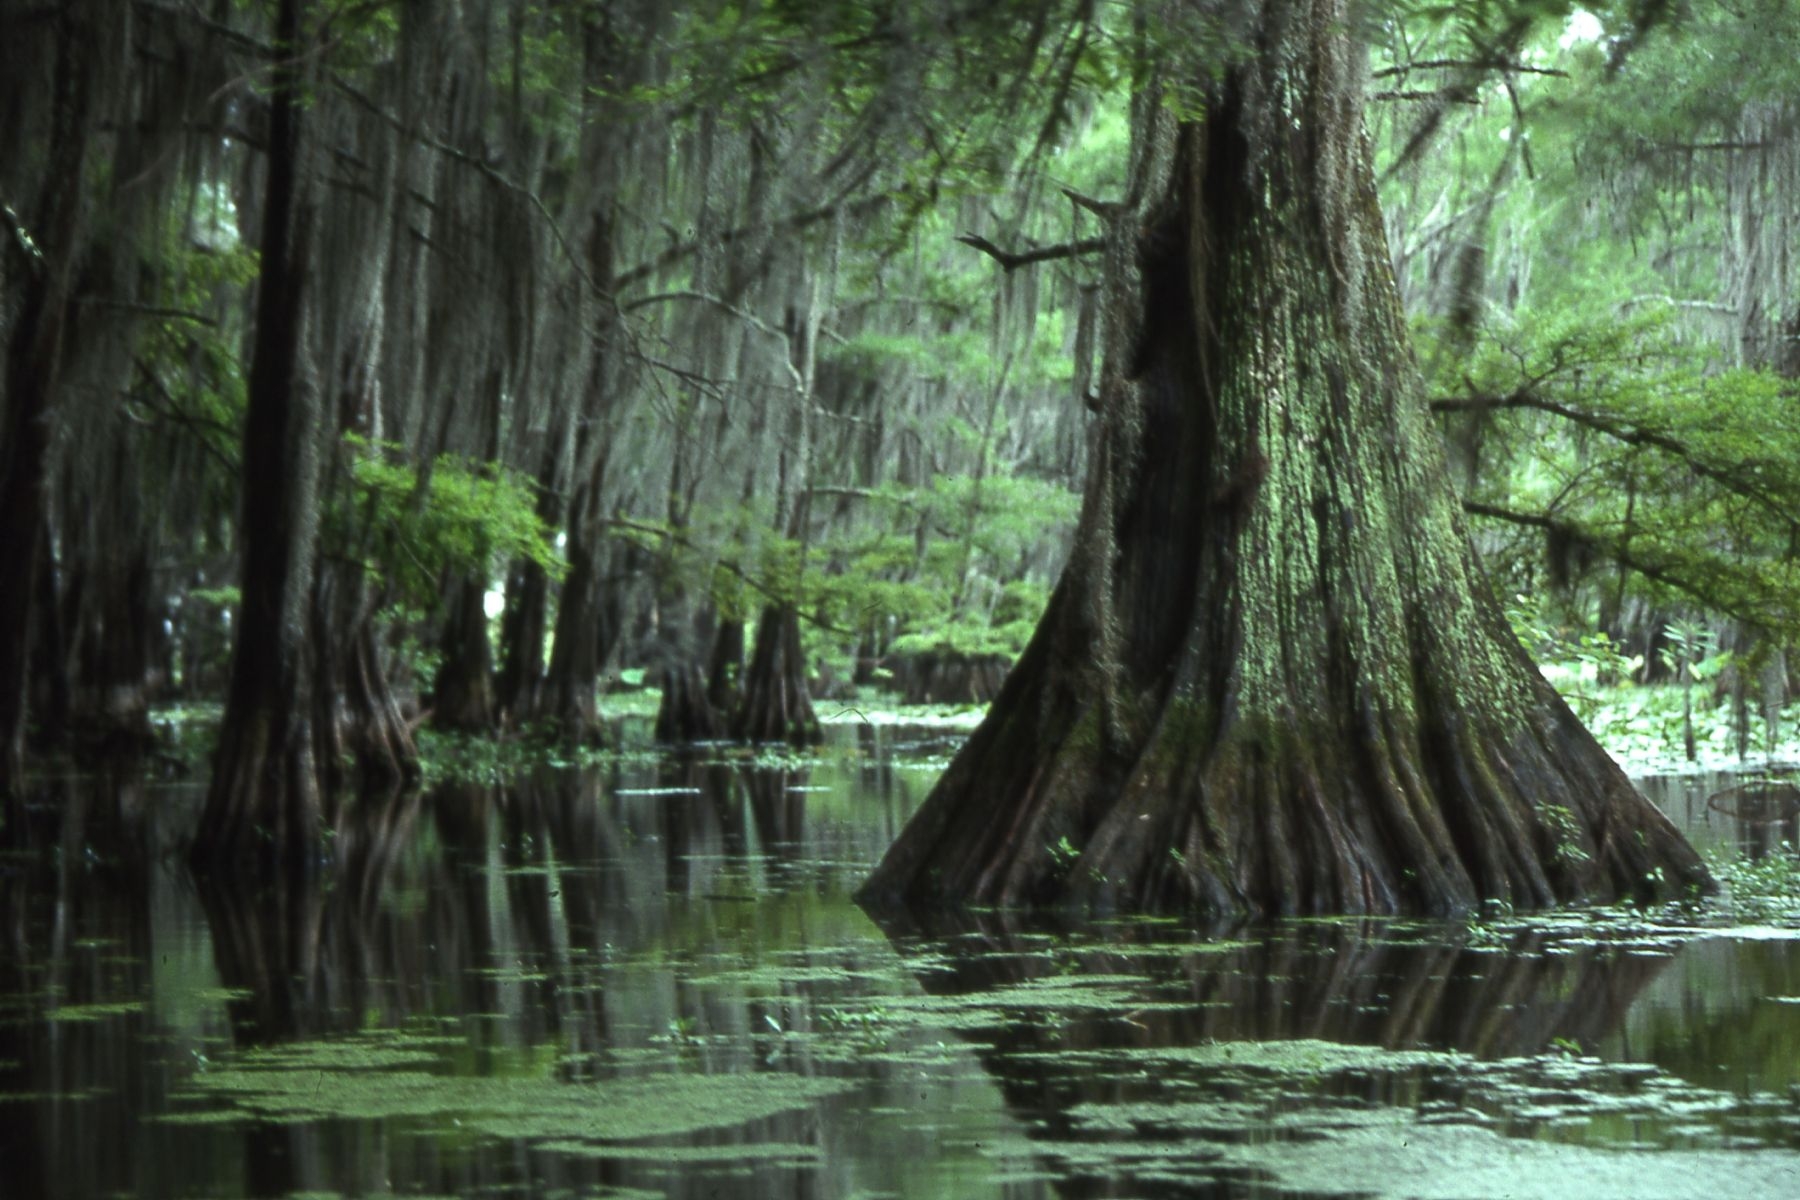 Canoeing at Caddo Lake, TX | The Beauty of Canoeing | Pinterest